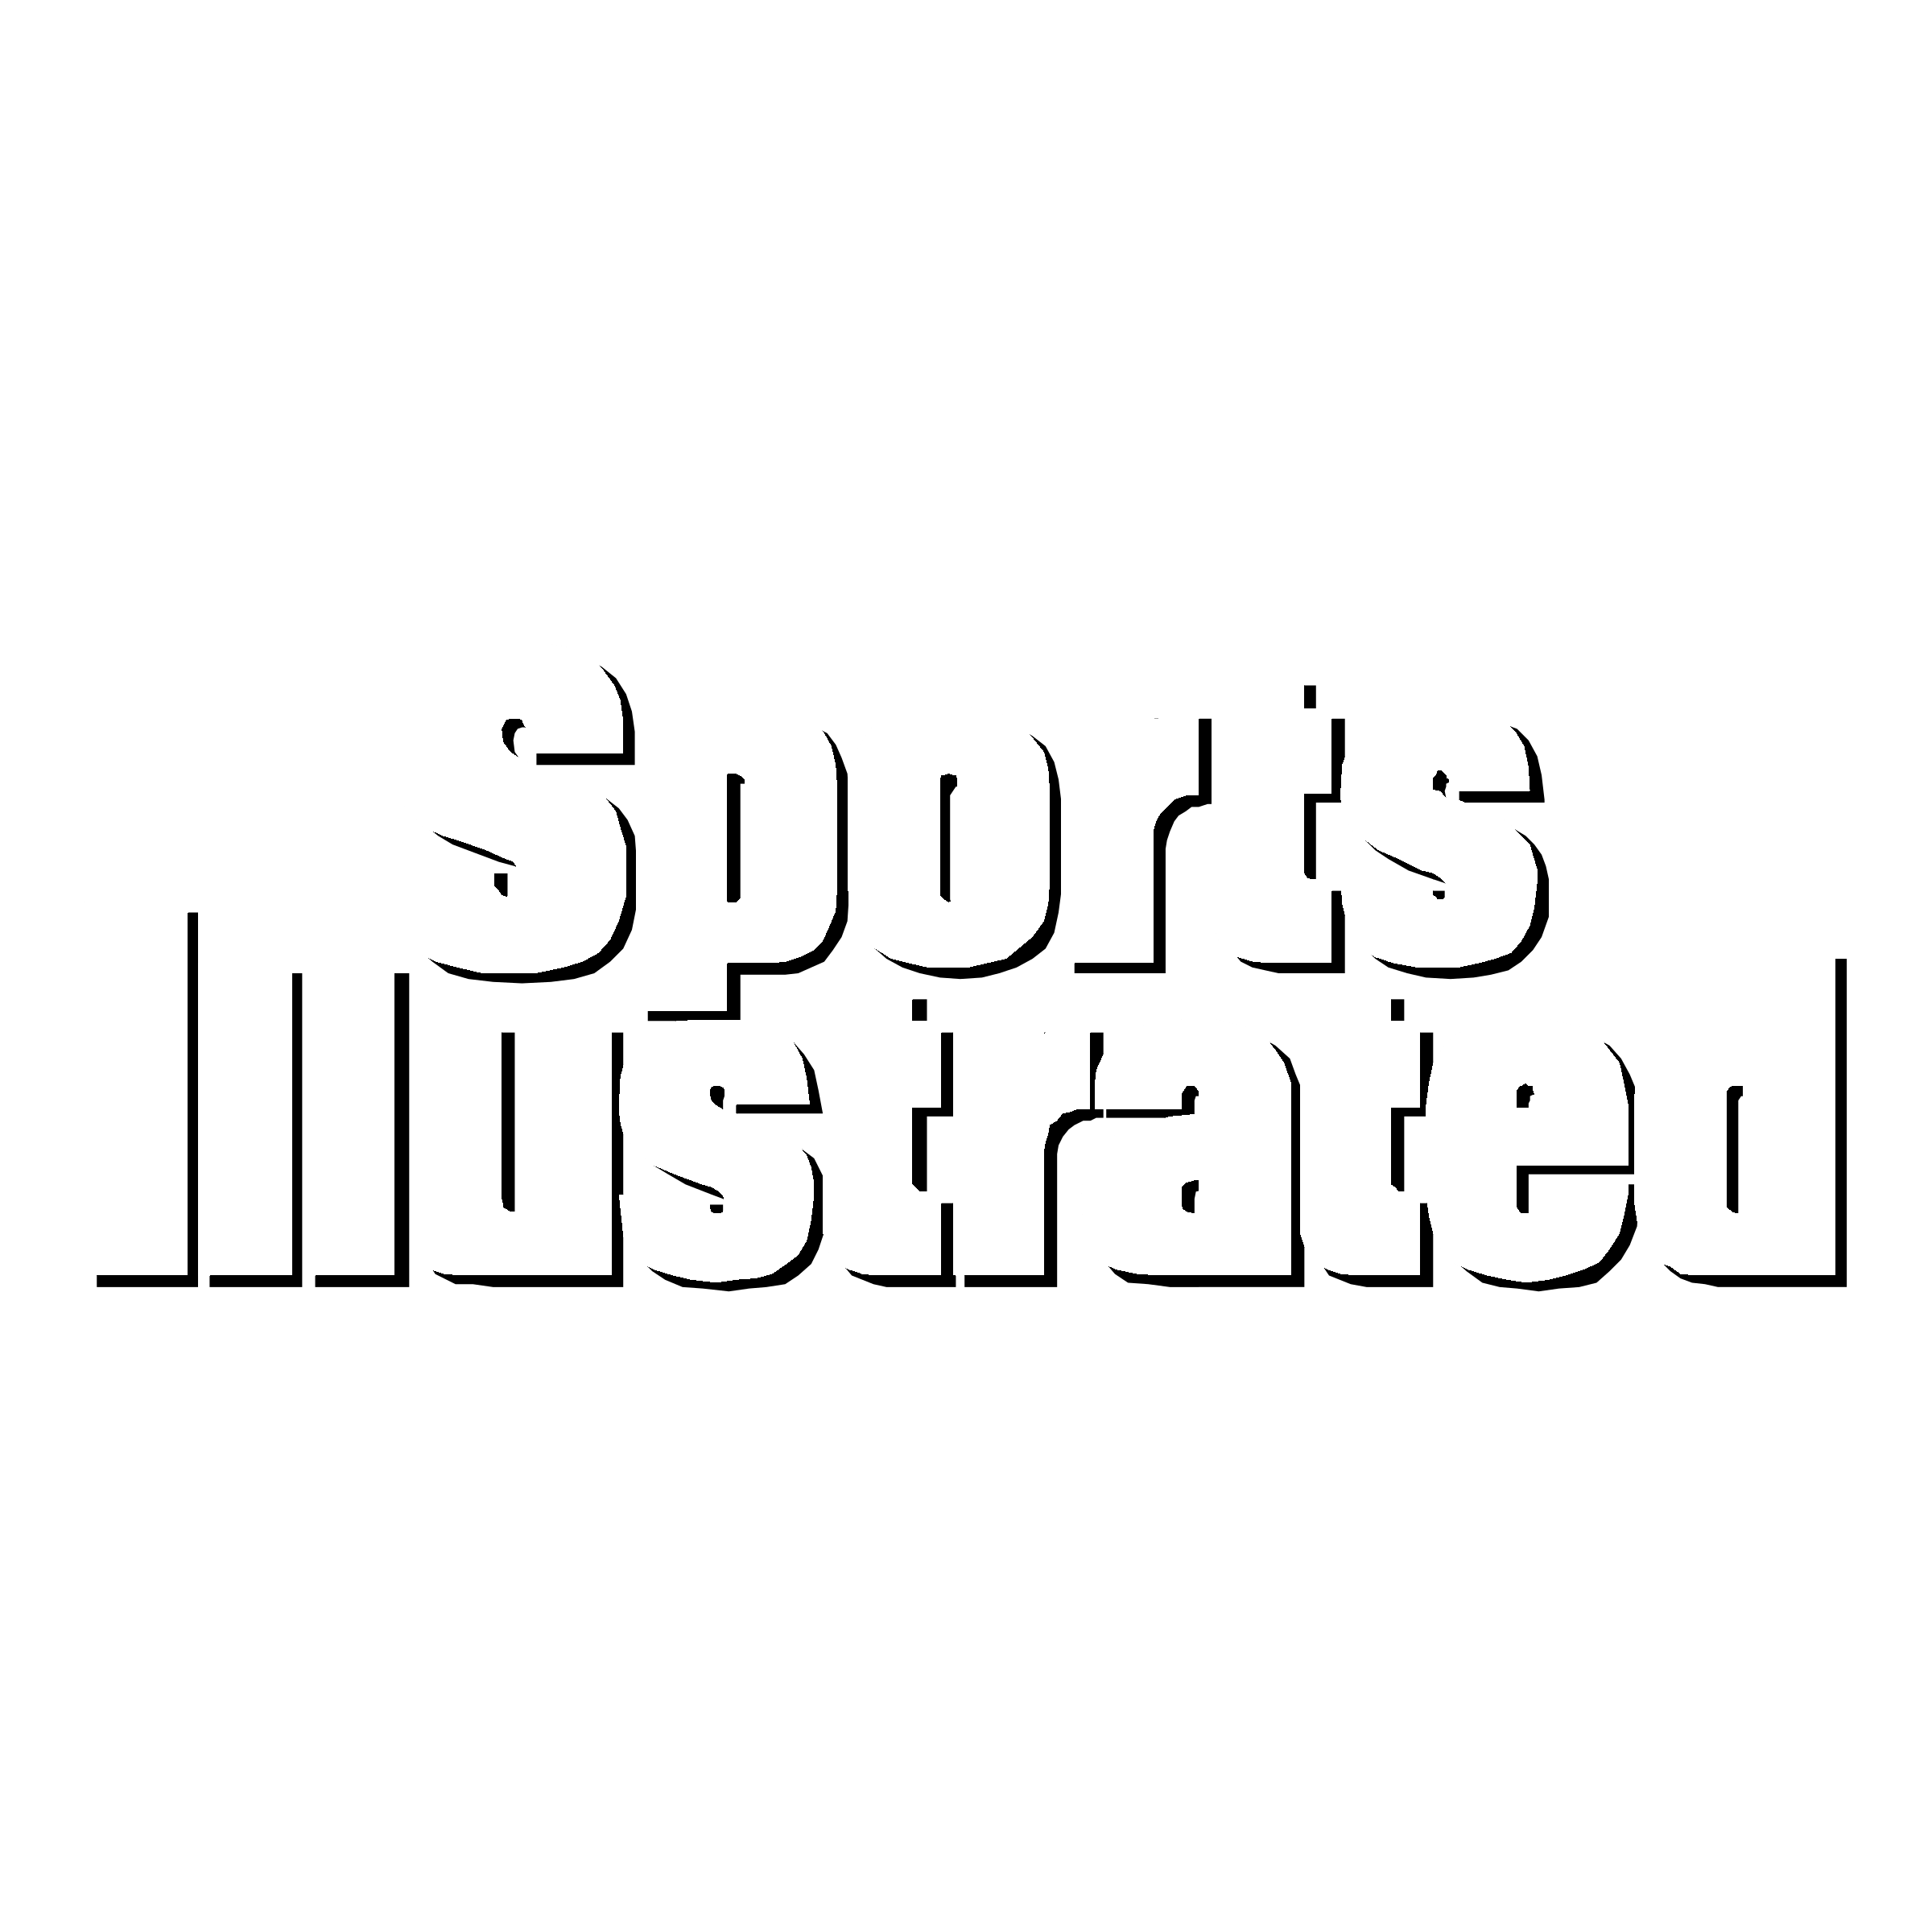 sports-illustrated-logo-black-and-white (1).png